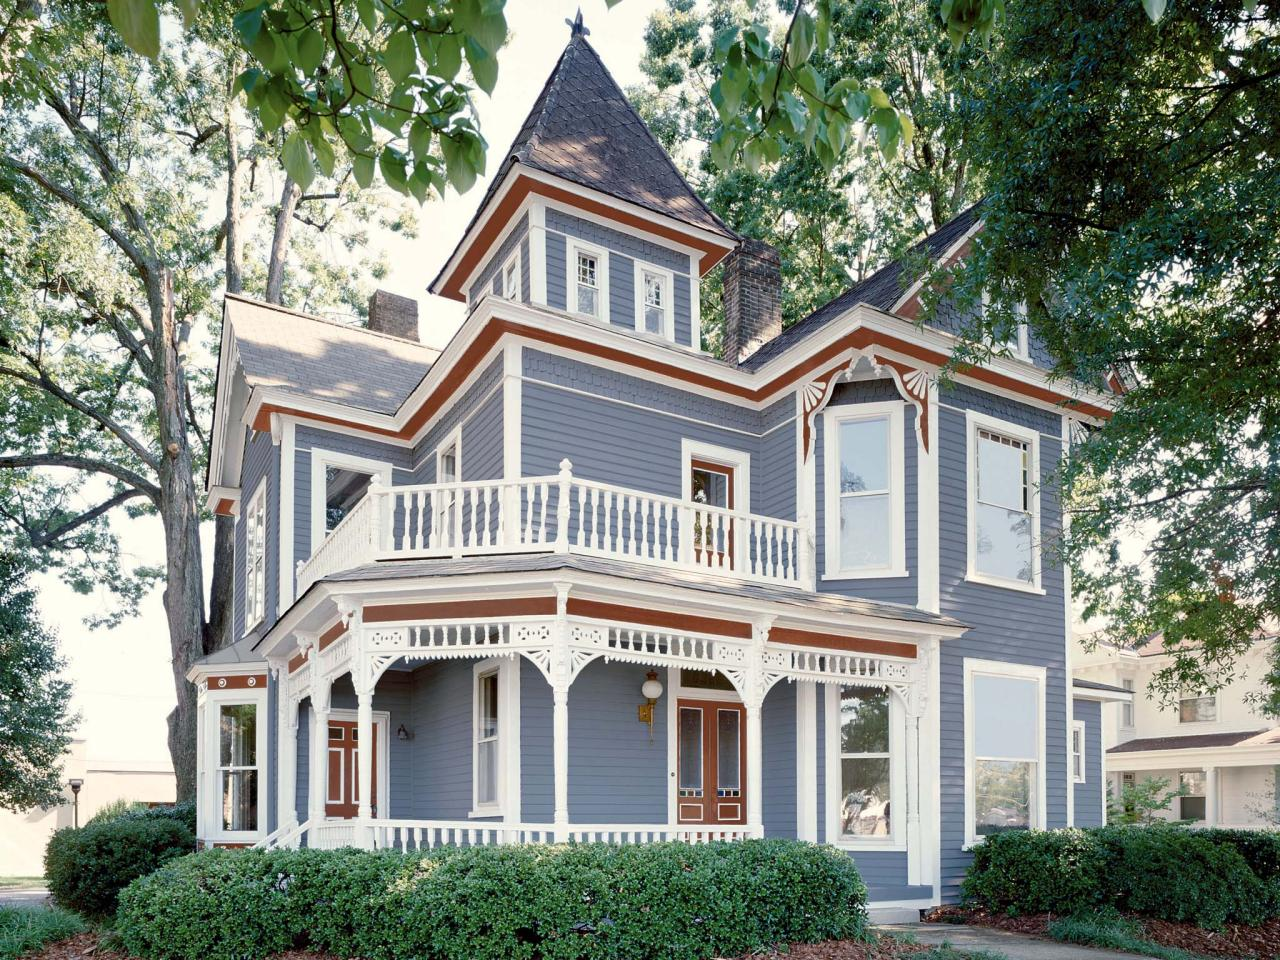 How To Select Exterior Paint Colors For A Home DIY - Exterior home paint